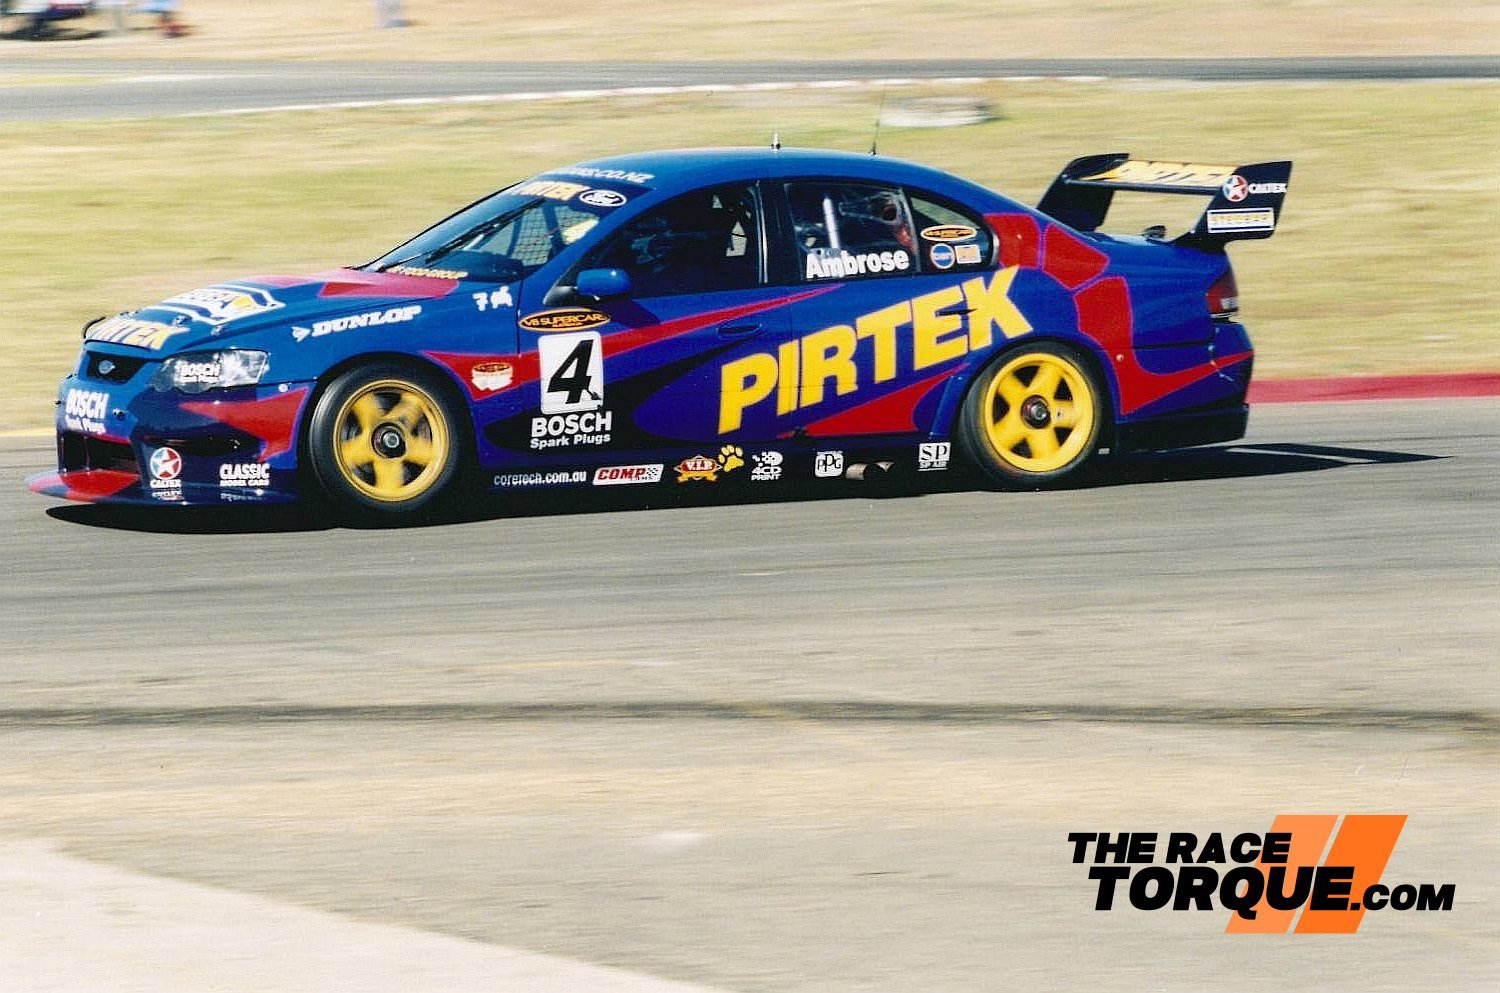 Ambrose in action later in the year at Oran Park